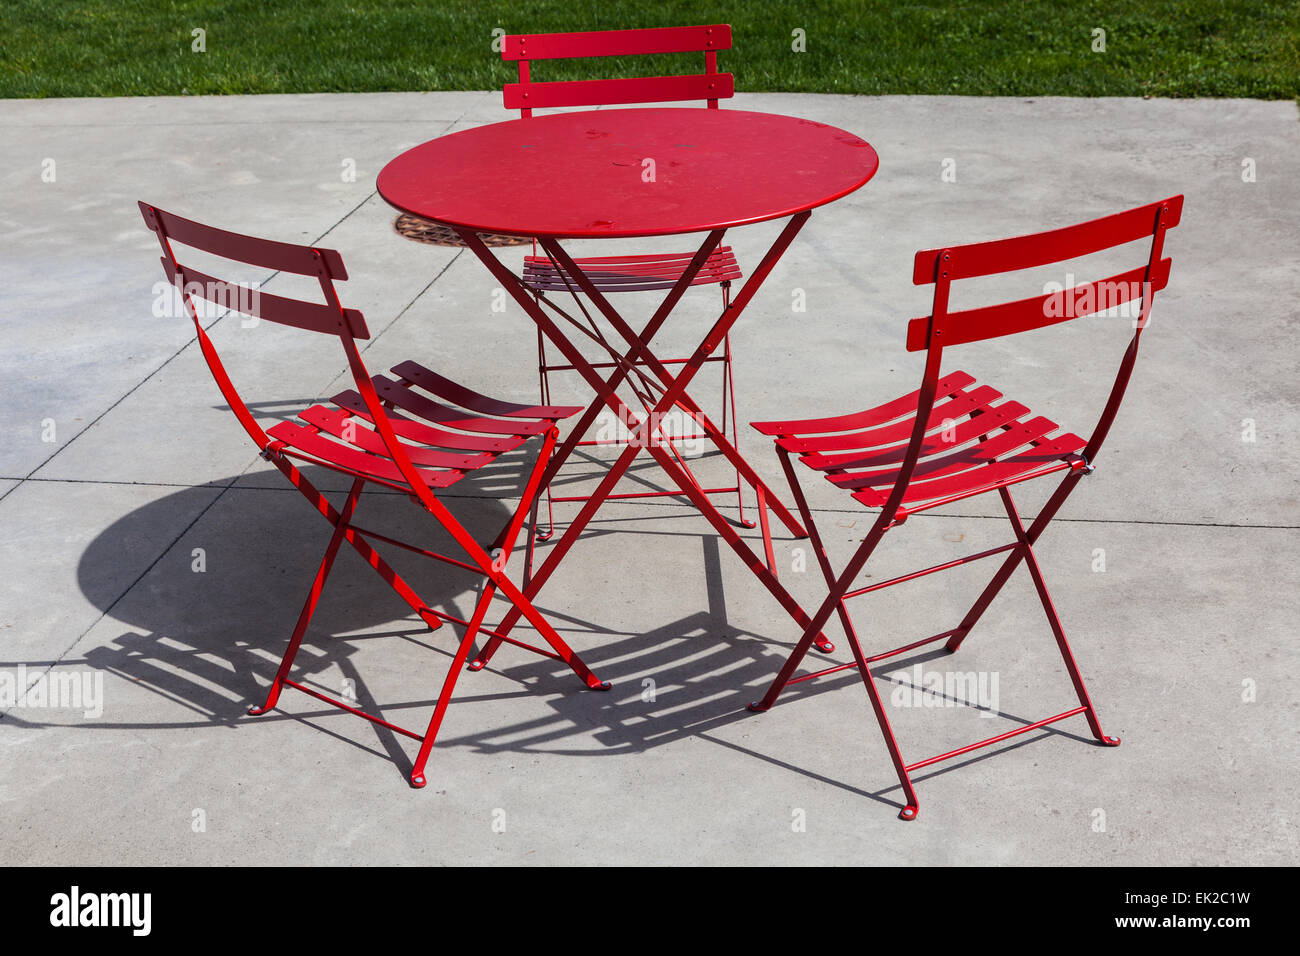 Red Patio Chairs Red Folding Patio Chairs And Table On A Concrete Surface Stock